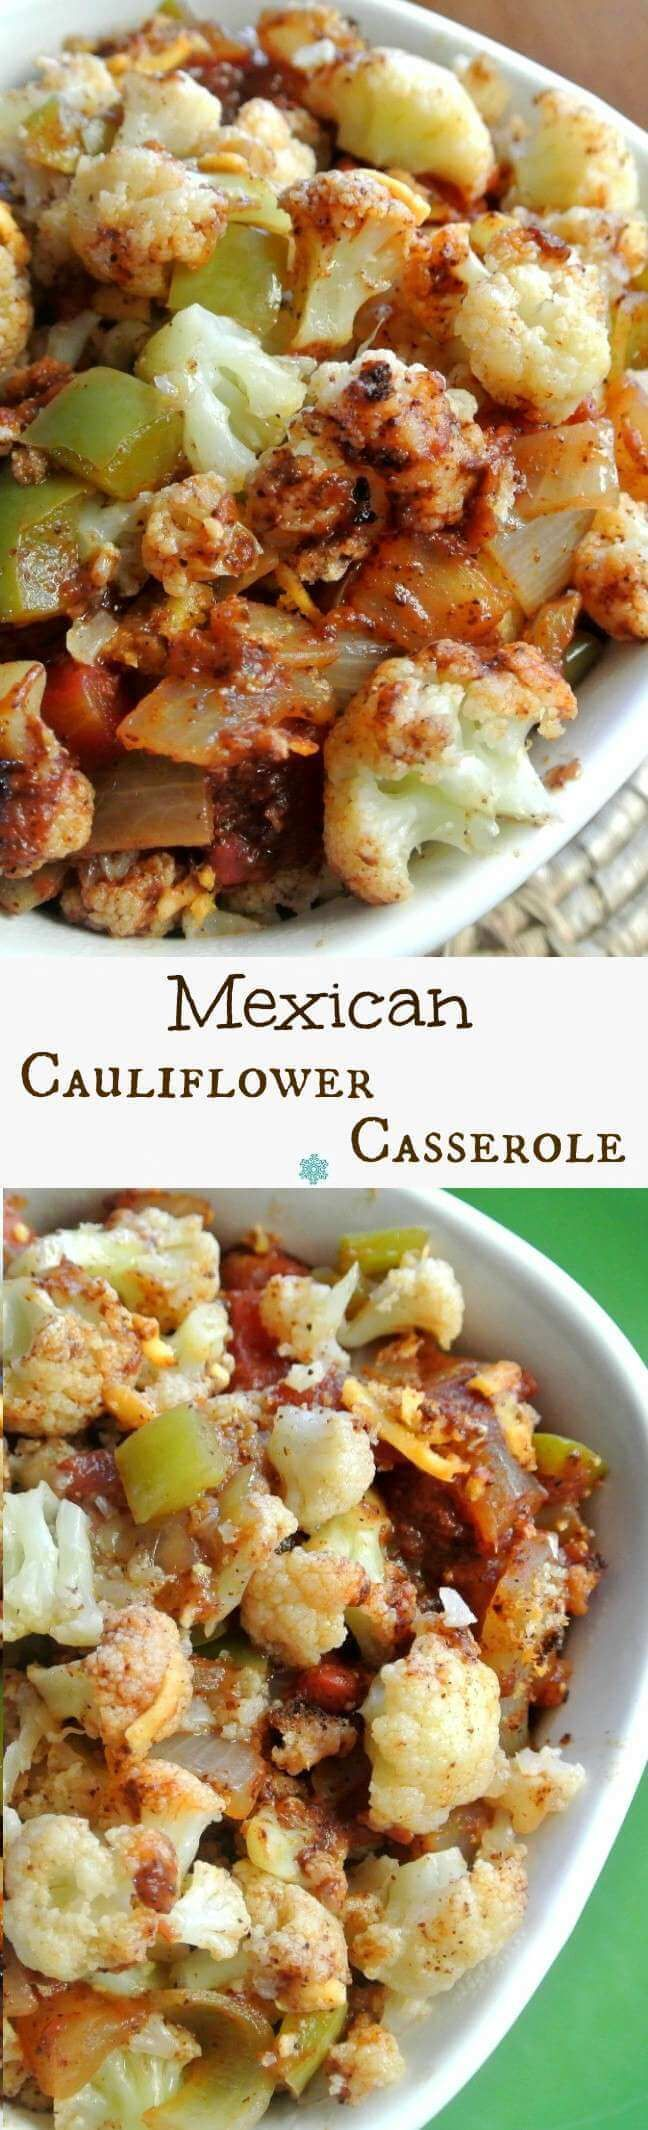 Mexican Cauliflower Casserole is a fantastic side dish. There are many spices and accent vegetables that blend just right. Easy to make and healthy too. ~ http://veganinthefreezer.com